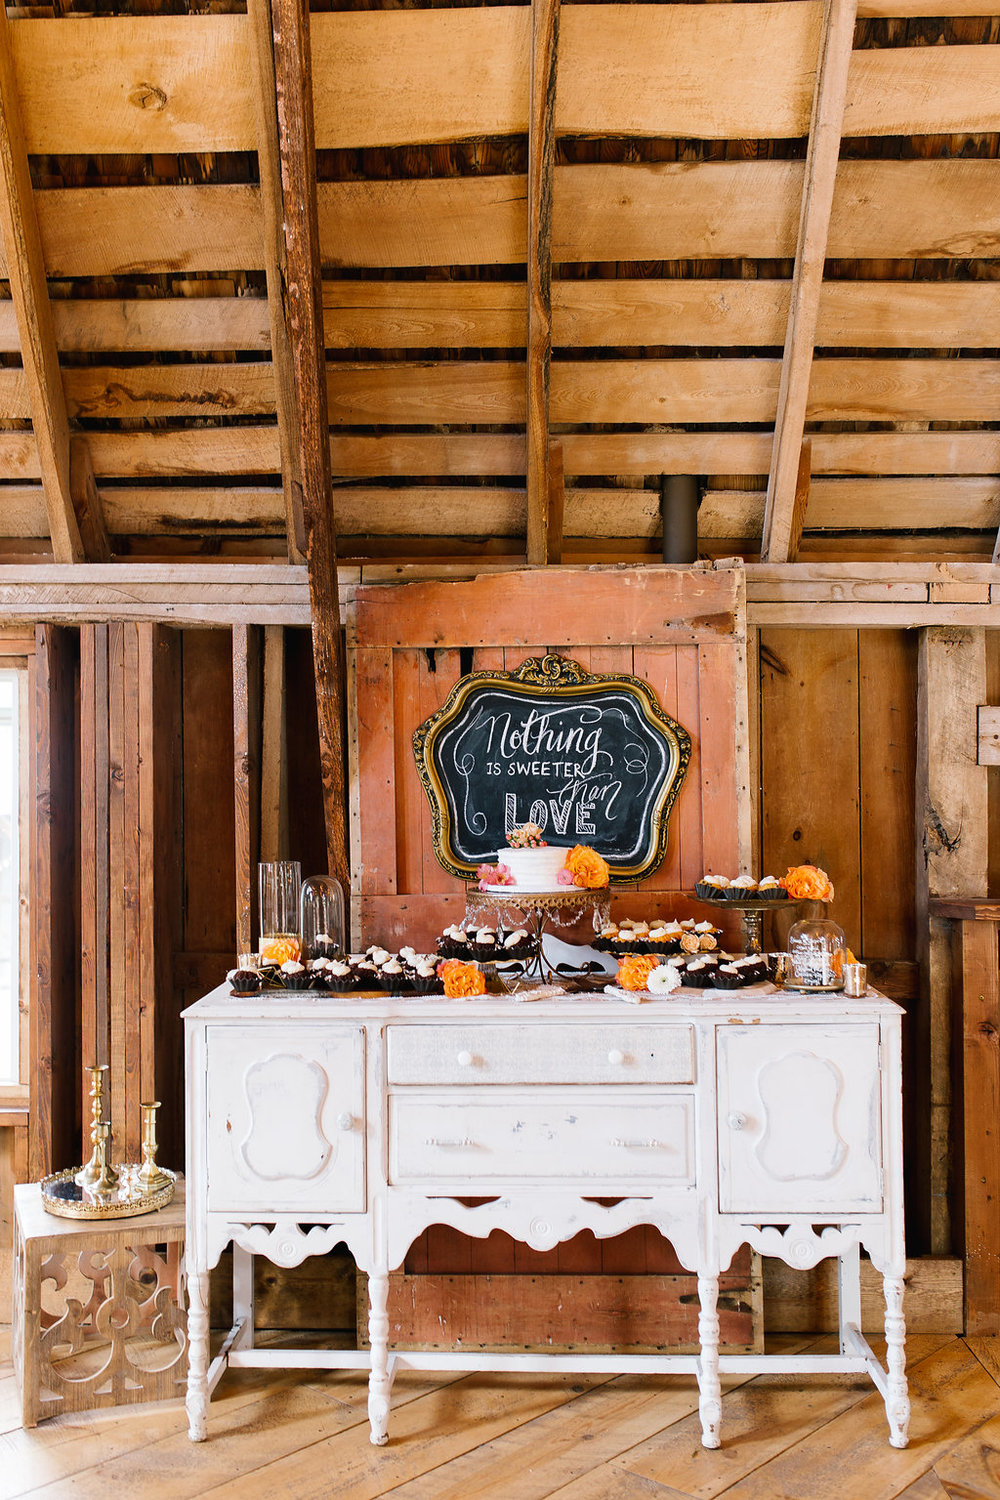 Jade and Seth Bloom Lake Barn wedding | Allison Hopperstad Photography | A Vintage Touch Weddings planning nad design | Day of Coordinating by Sixpence Events | nothing is sweeter than love sign on old barn door and chalkboard | bunt cake buffet